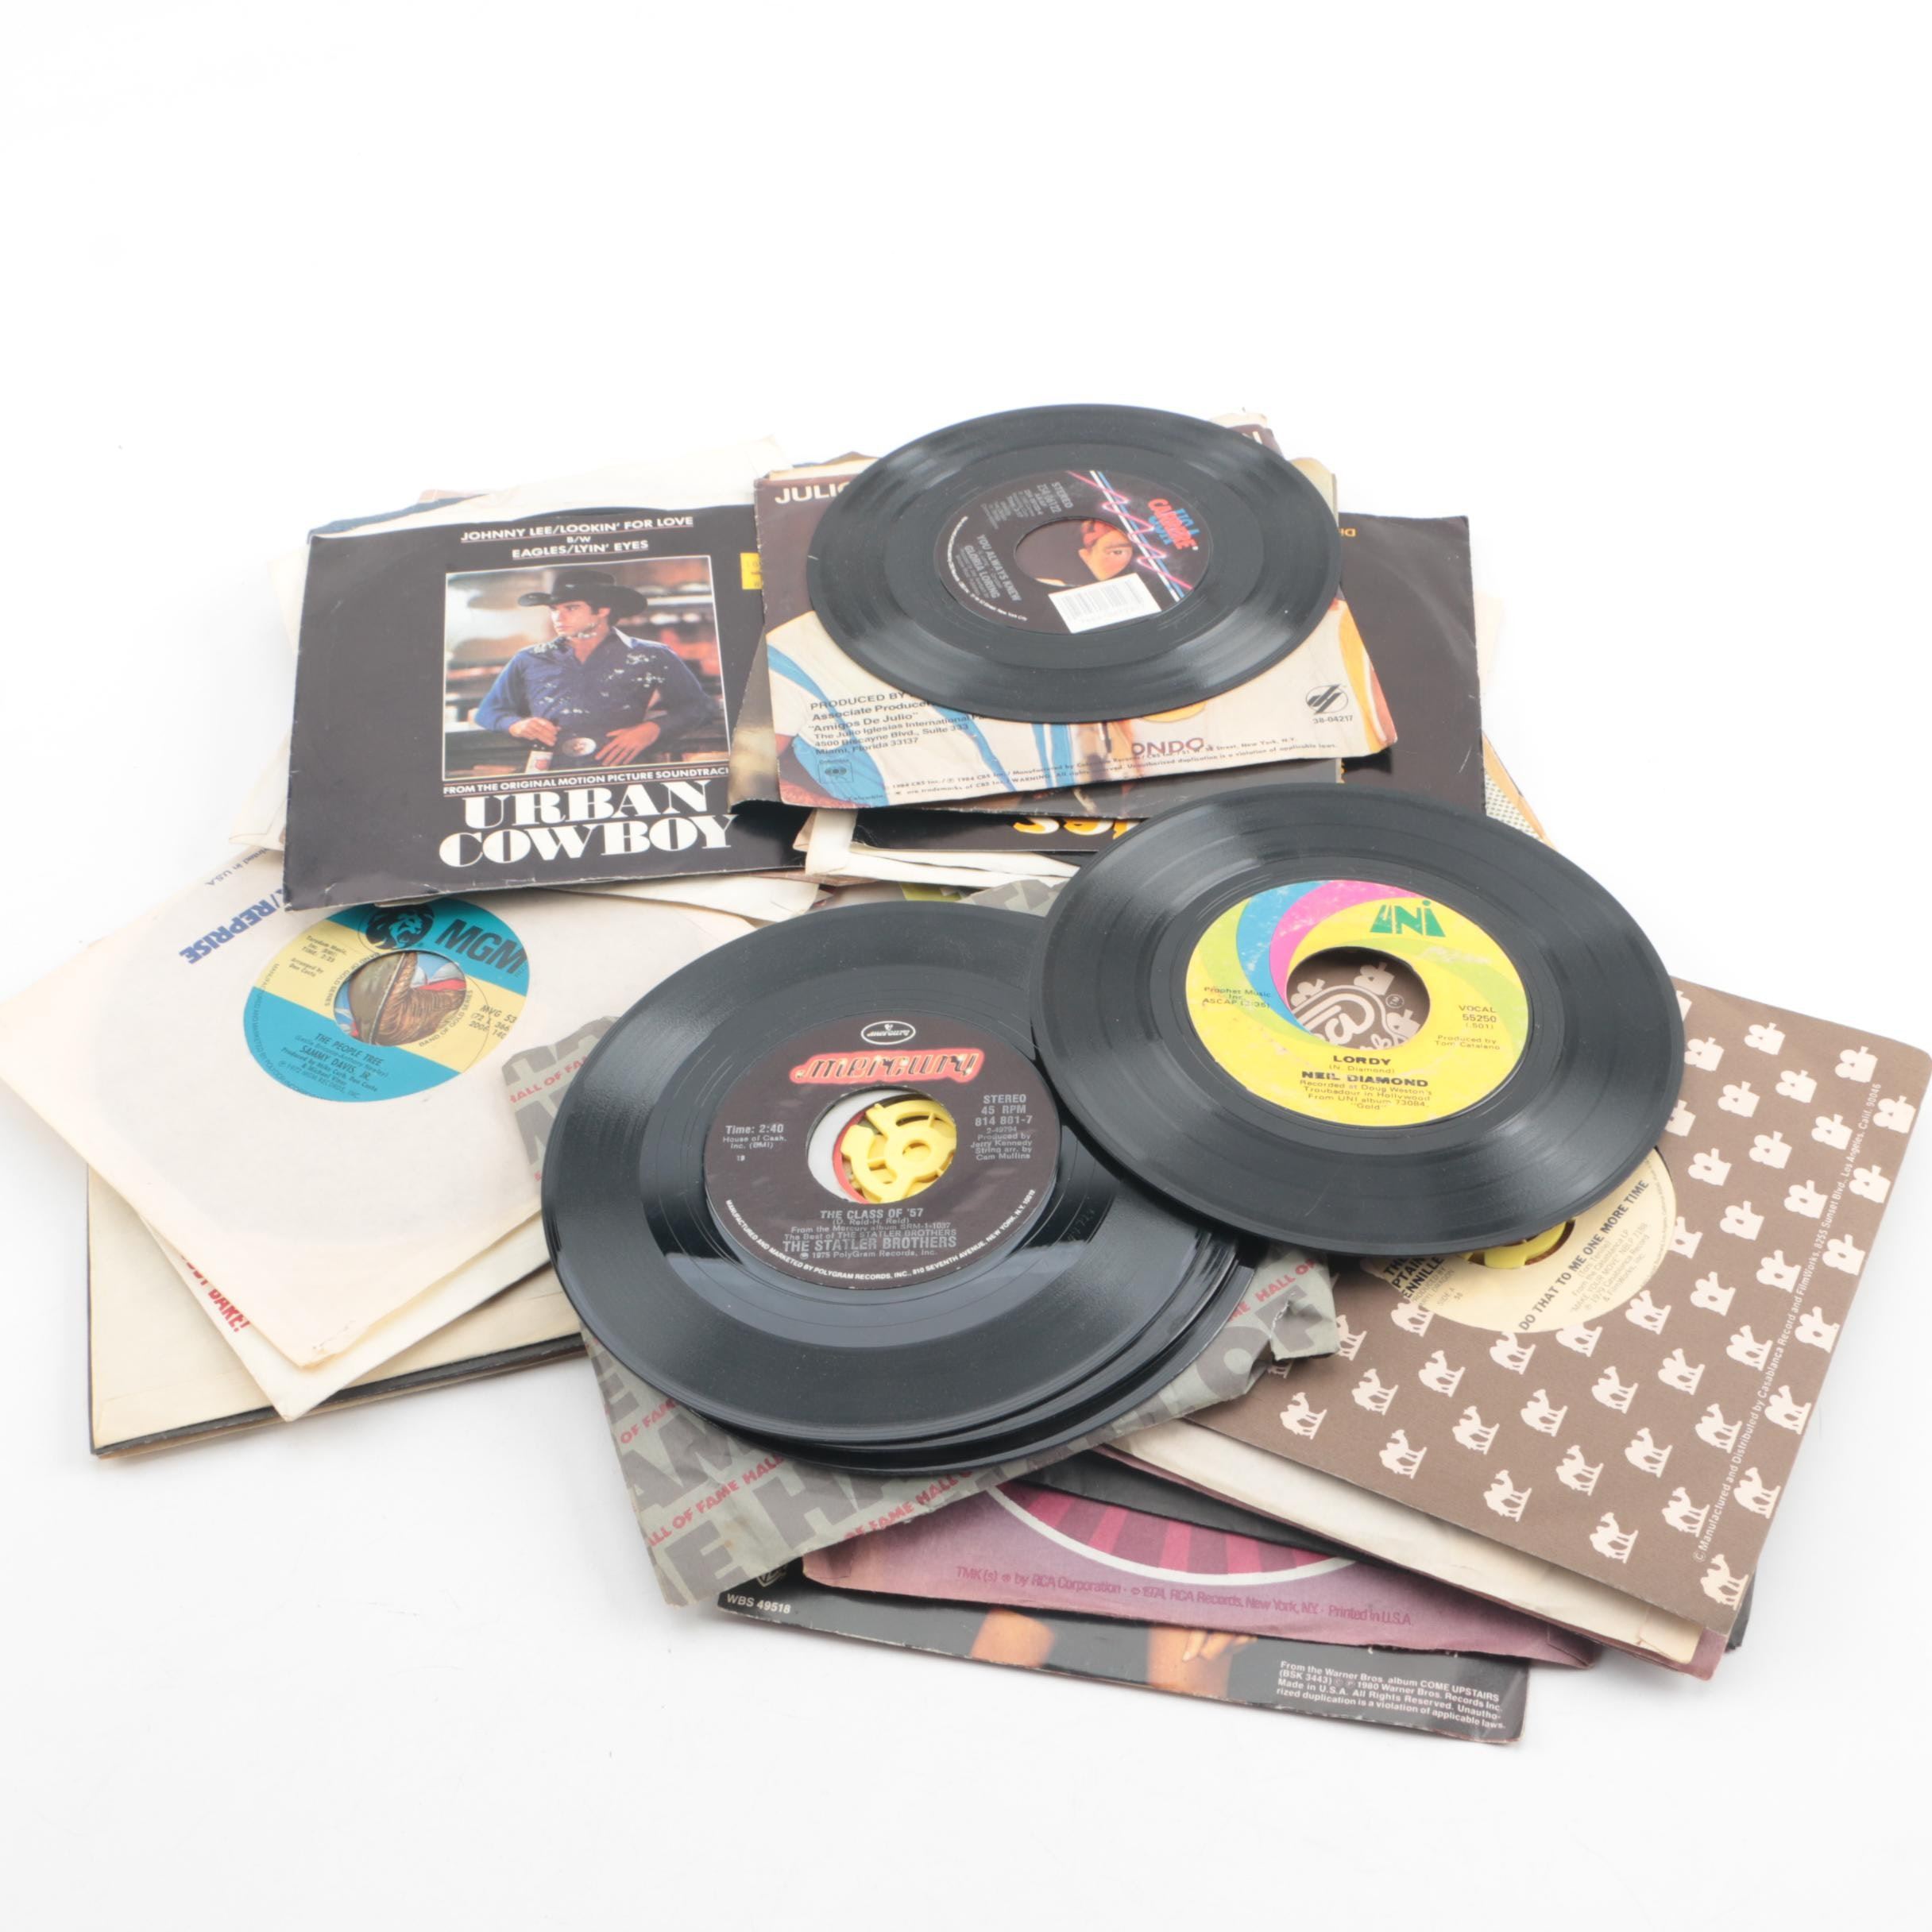 Rod Stewart, The Statler Brothers, Michael Jackson and Other Vintage Records